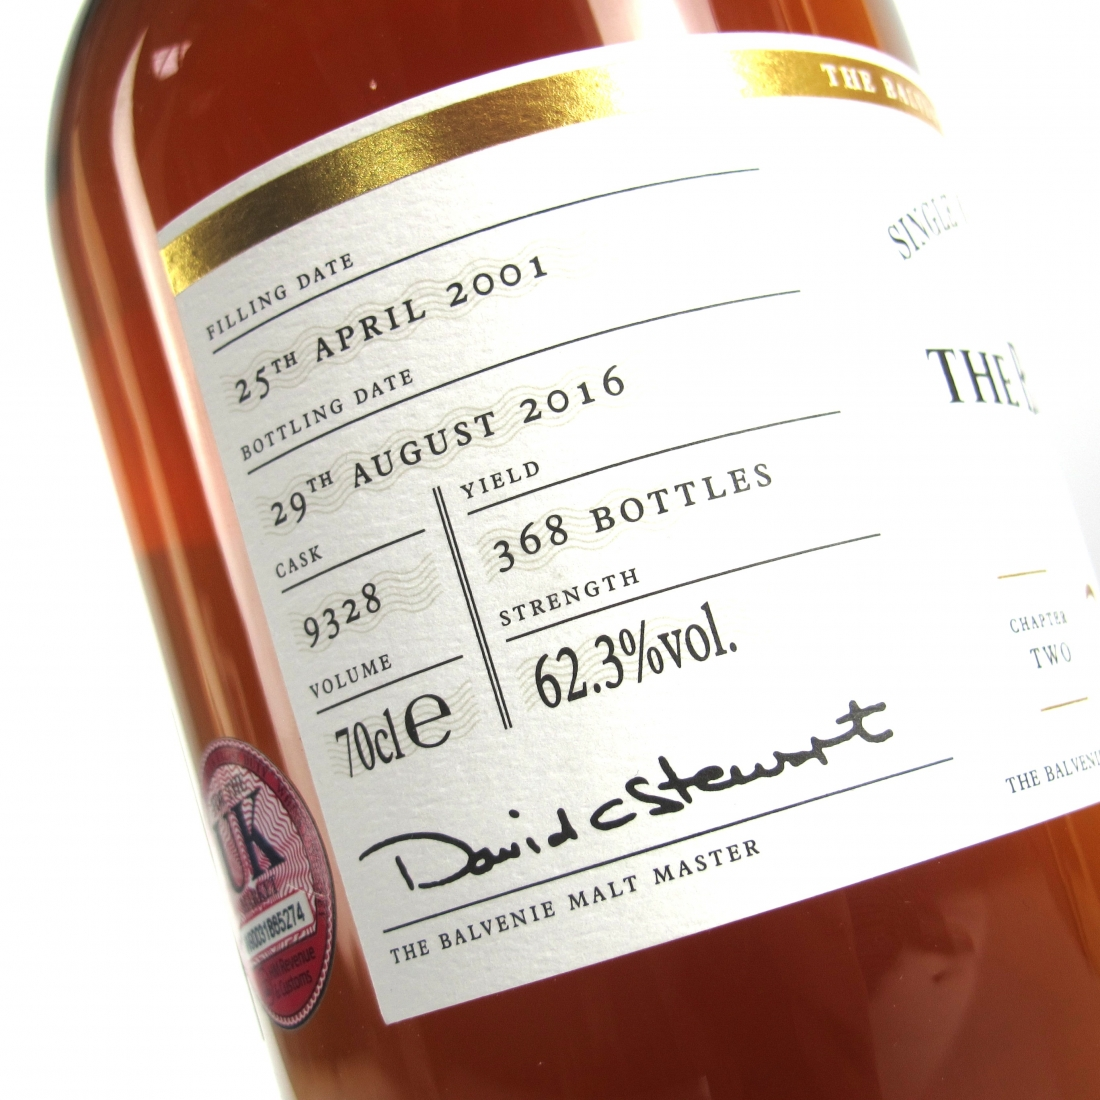 Balvenie 2001 DCS Compendium 15 Year Old Chapter #2 / Signed Including Pictures and USB